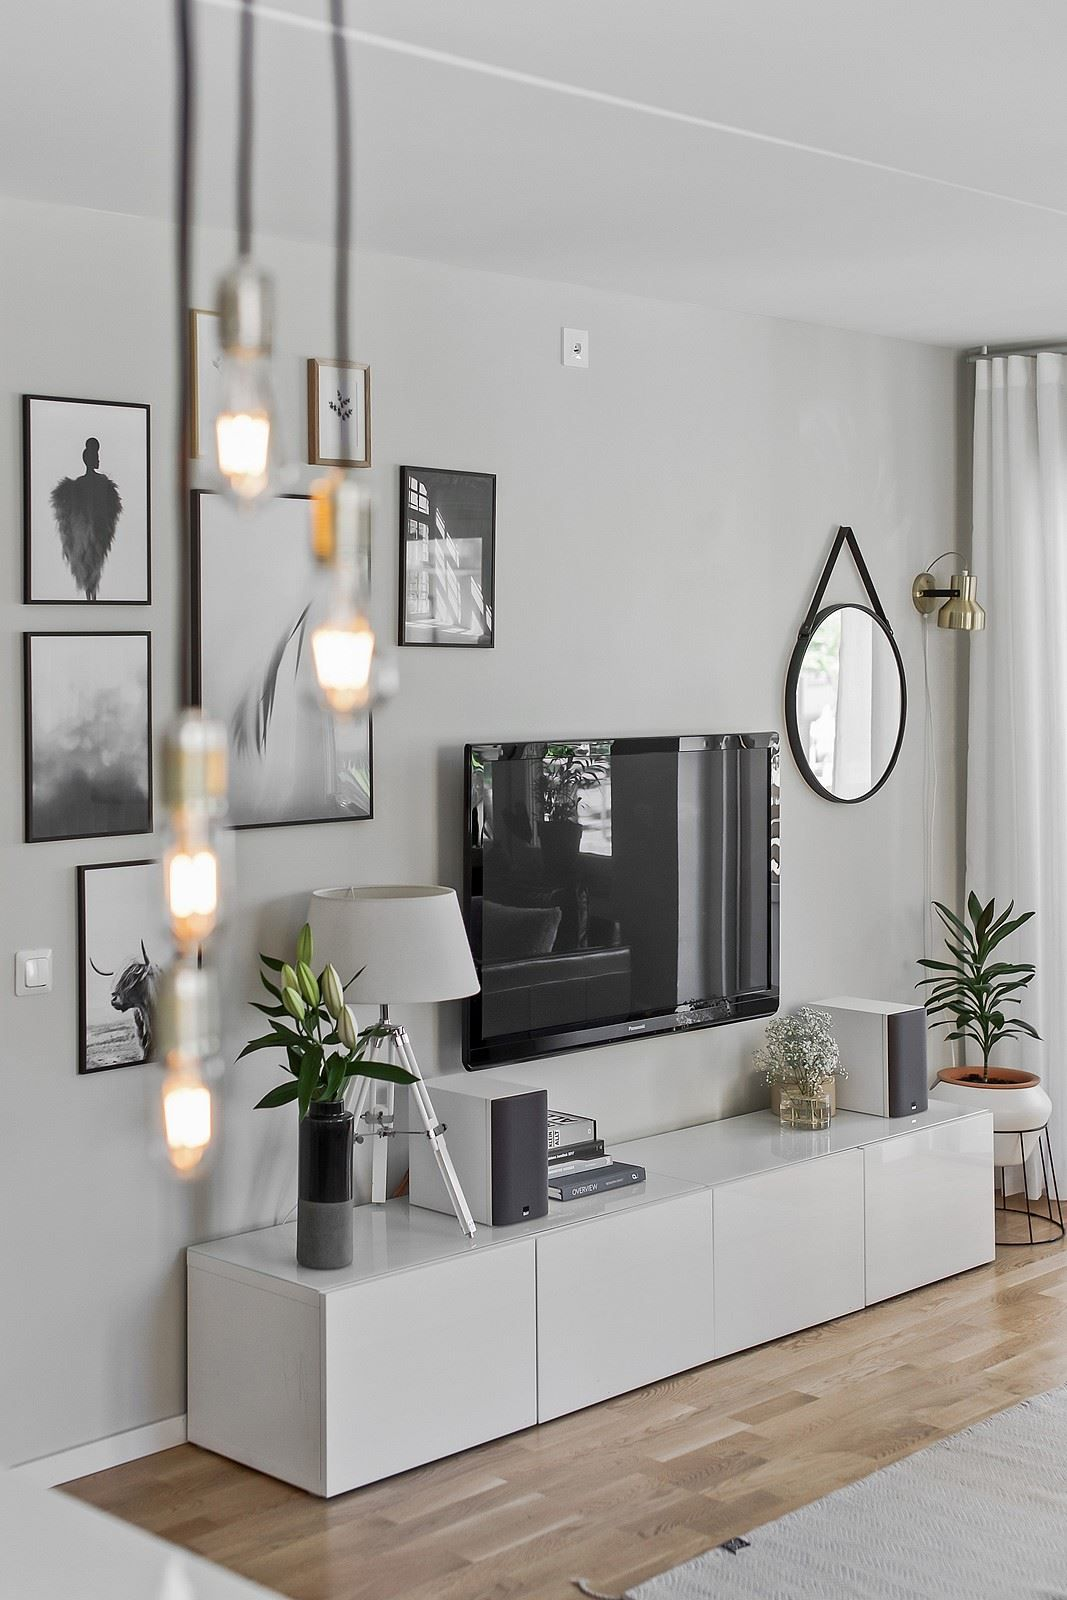 Ikea  Best      sideboard   WOHNZIMMER   Pinterest   Living rooms  Room     Ikea  Best      sideboard